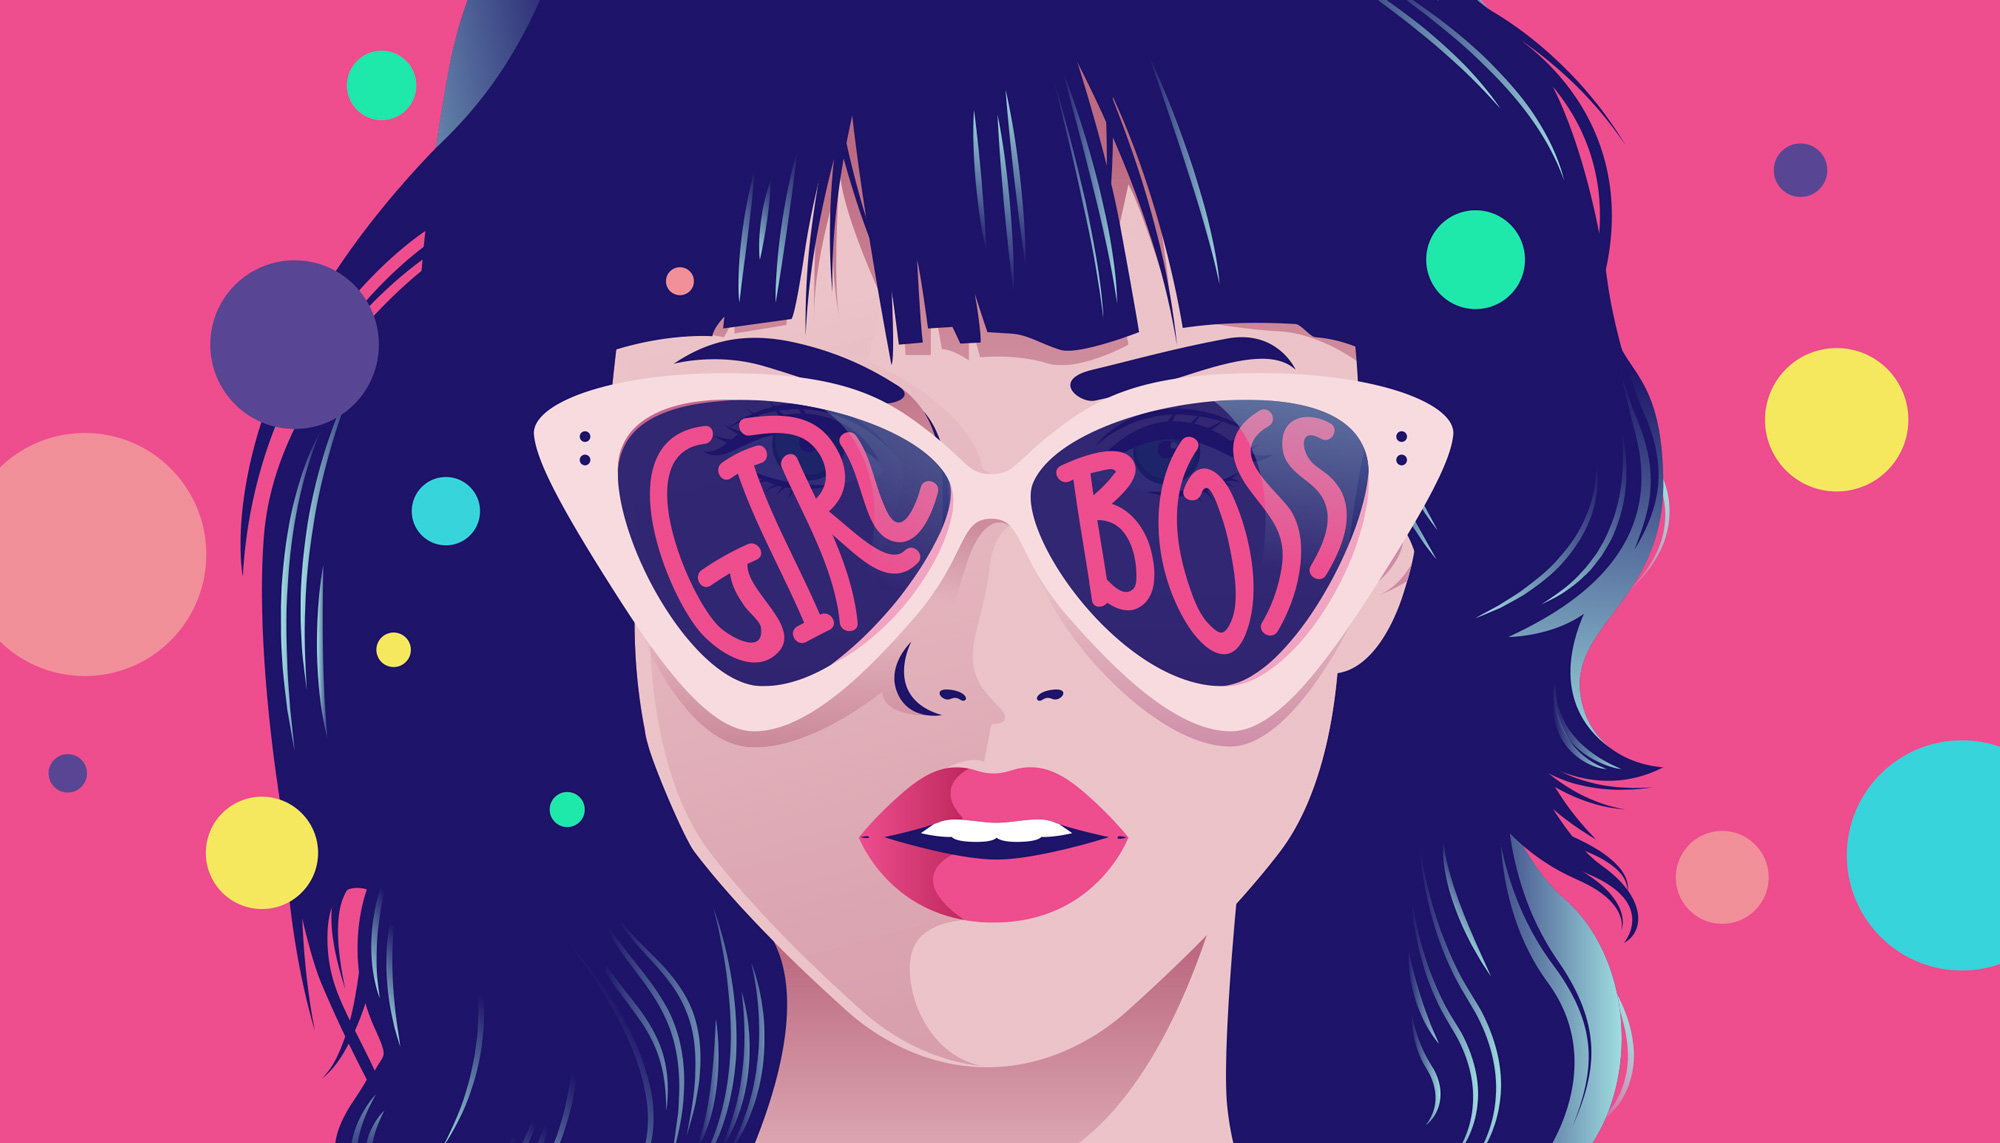 GIRLBOSS Illustration by La Come Di